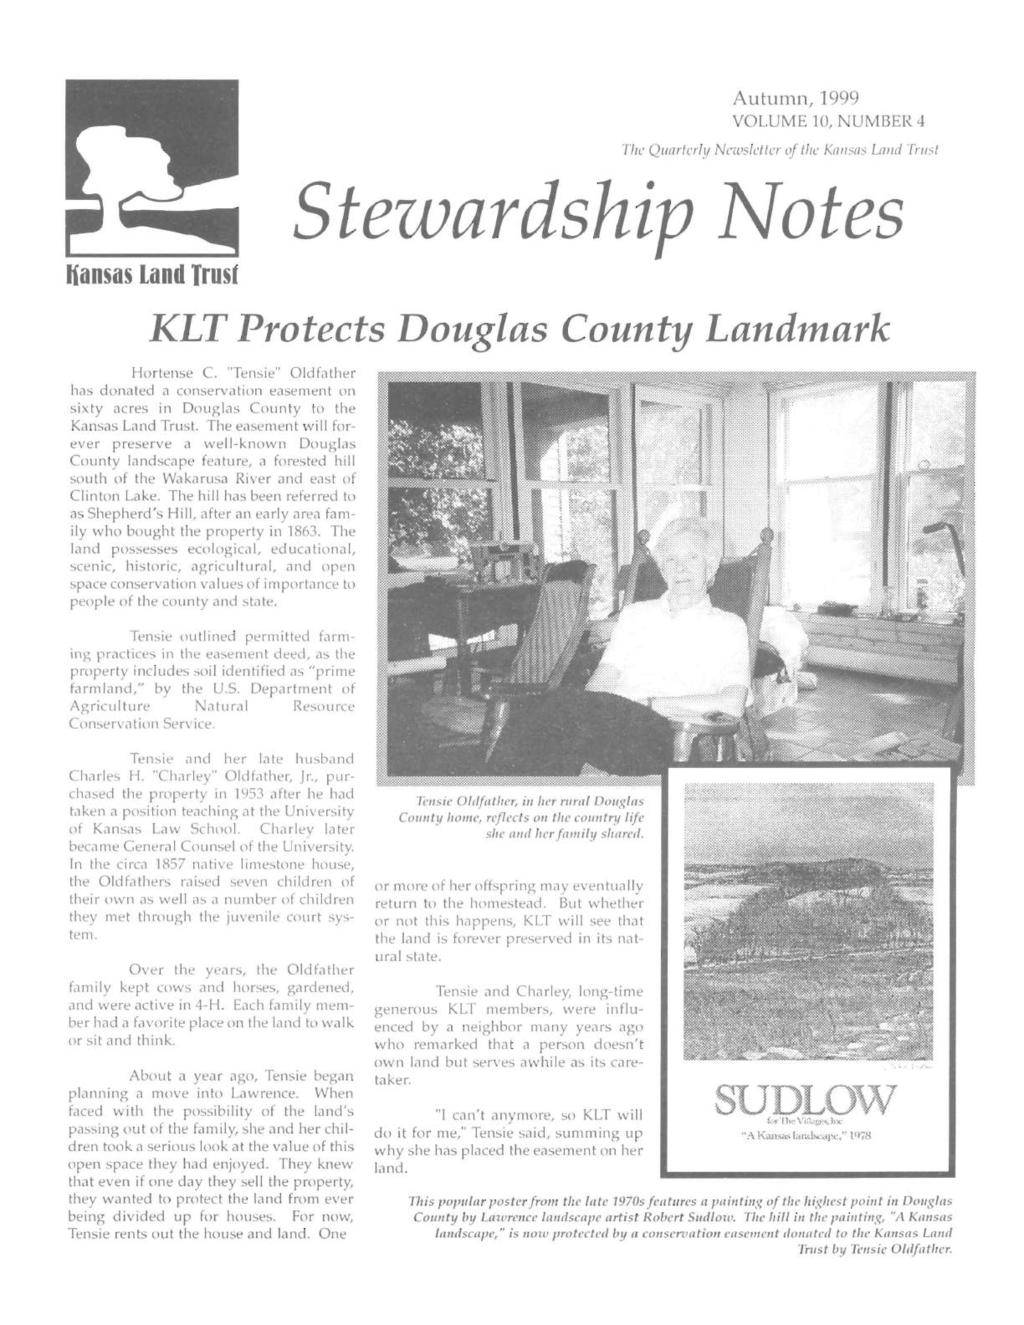 Hansas Land Trust Autumn, 1999 VOLUME 10, NUMBER 4 The Quarterly Newsletter of lhe Kansas Lalld Trust Stezvardship }Votes KLT Protects Douglas County Landmark Hortense C.